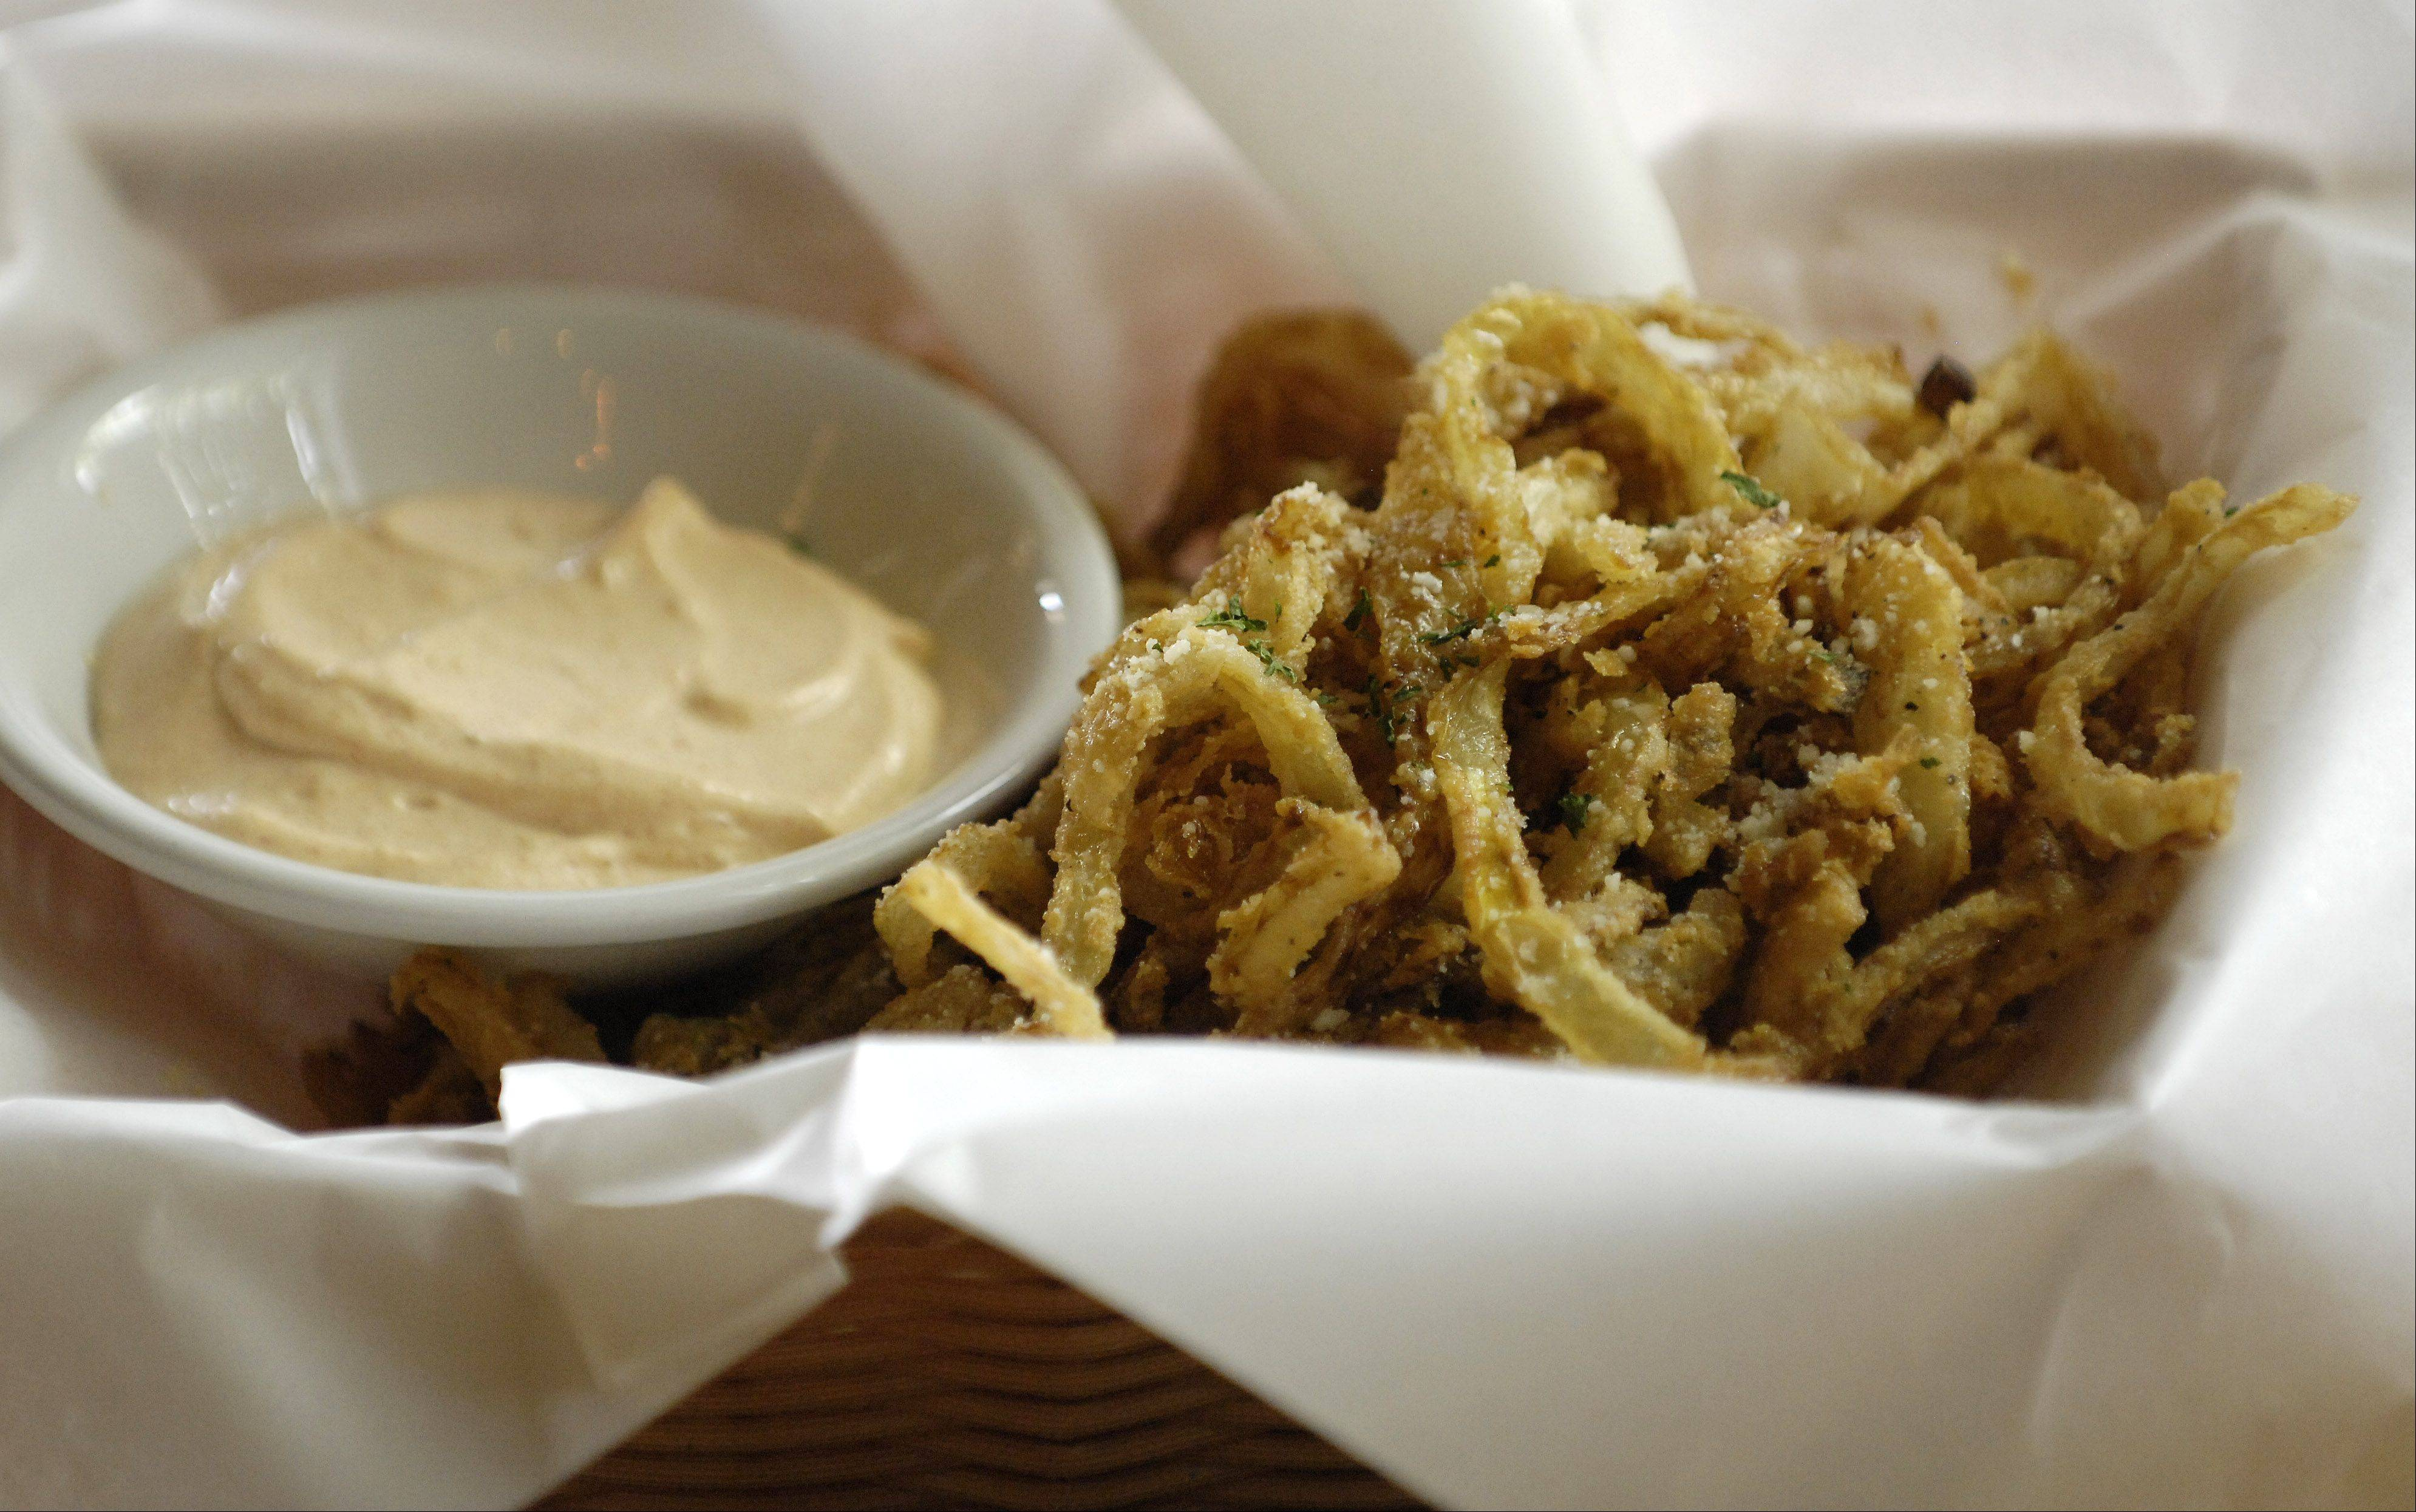 The Onion Loaf from the Filling Station in downtown St. Charles is a filling starter. Try it with ranch dip.